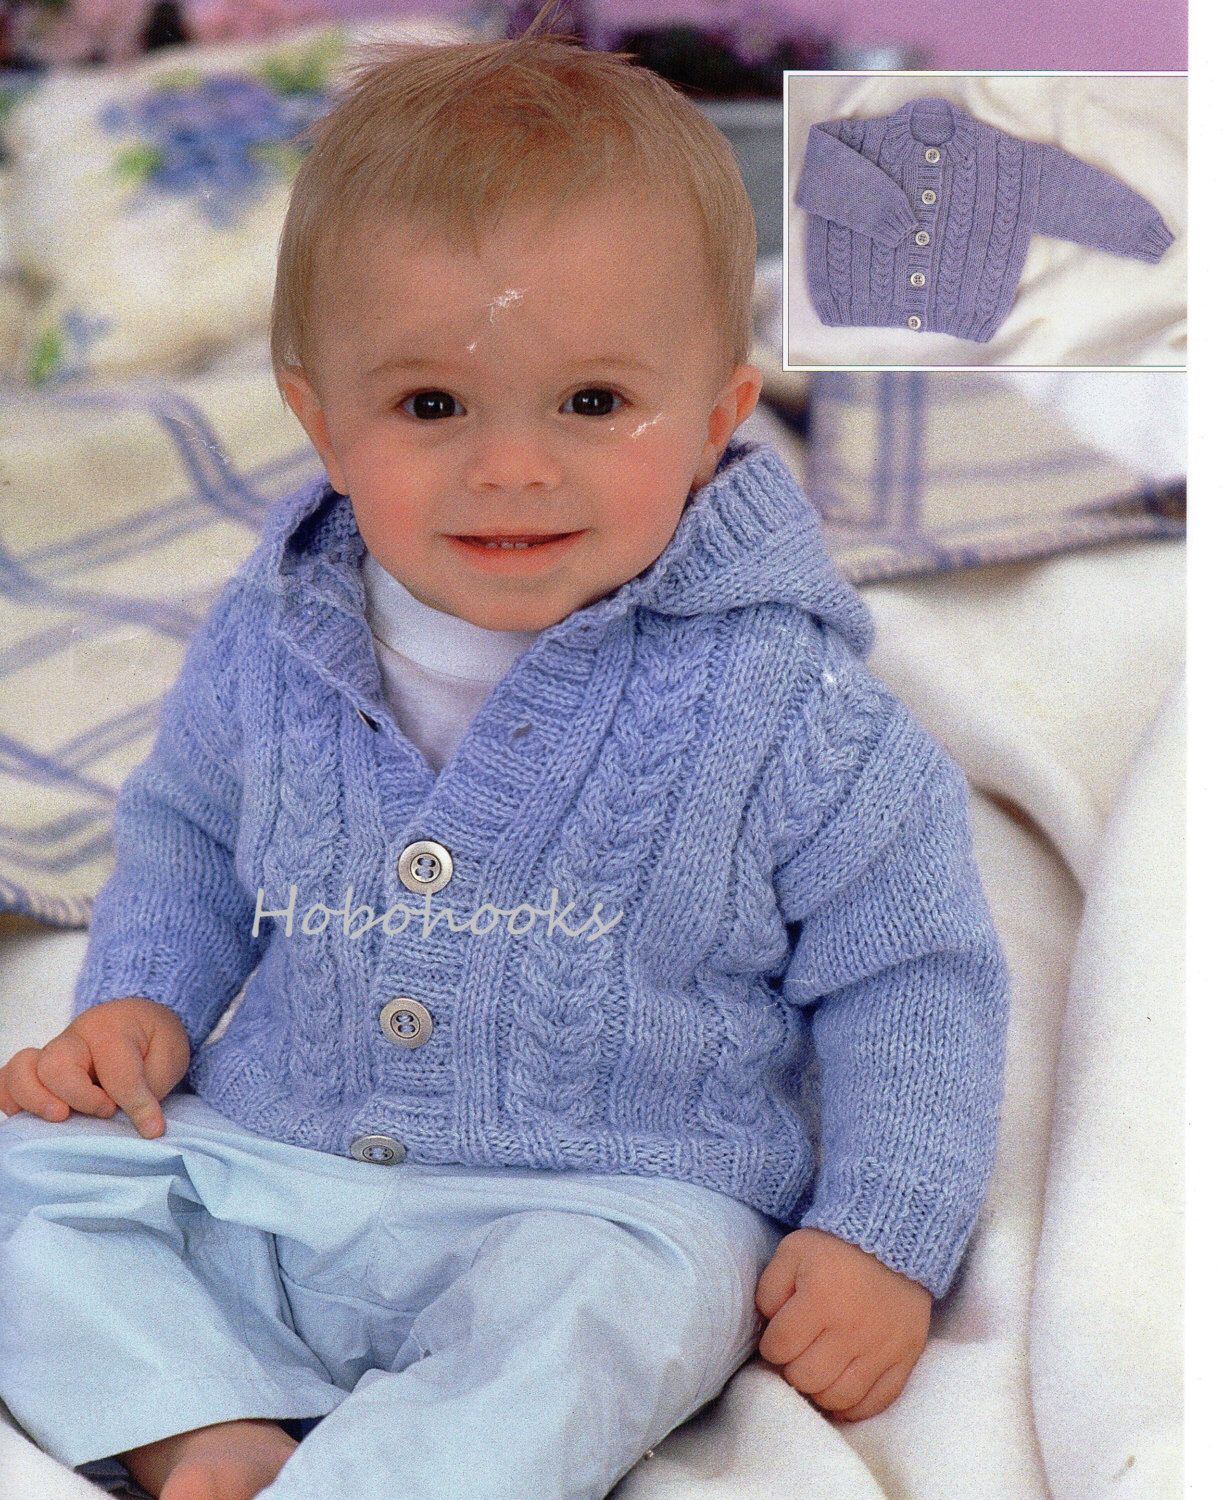 Baby Knitting Pattern Childs Knitting Pattern Baby Cardigans Childs Cardigans 18-26 inches DK Baby Knitting Patterns PDF Instant Download by Minihobo on Etsy https://www.etsy.com/listing/221960601/baby-knitting-pattern-childs-knitting